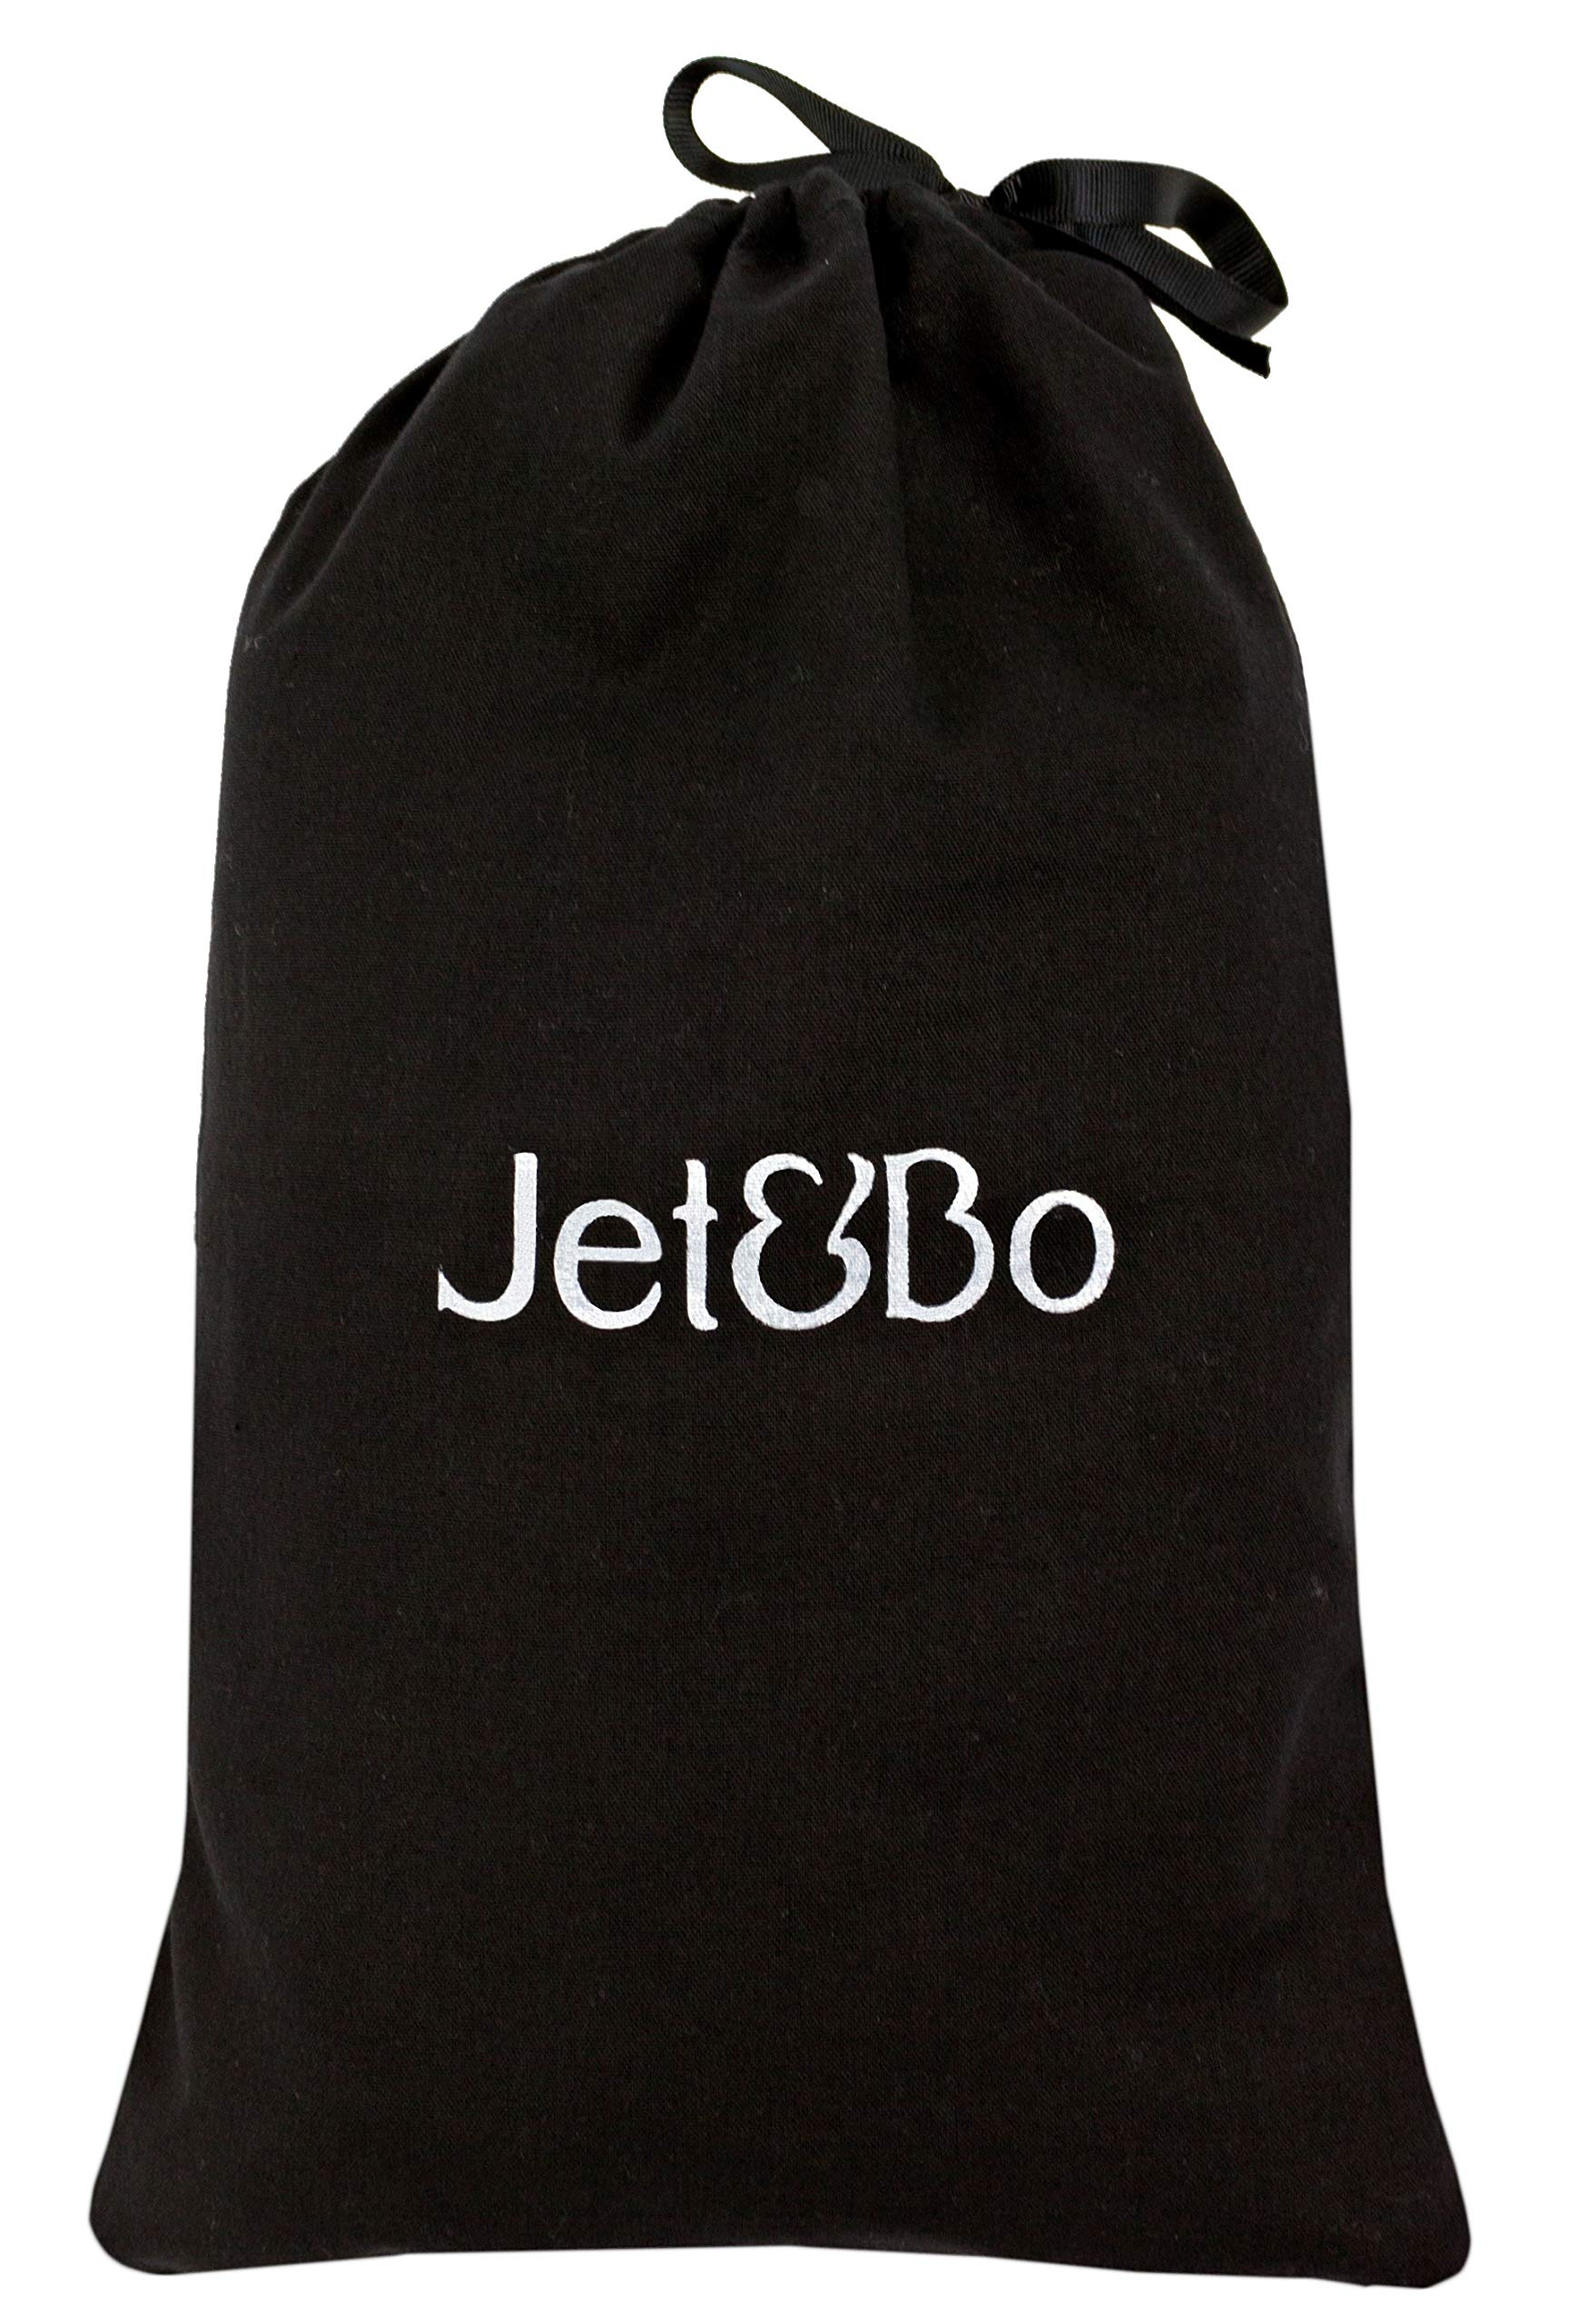 Jet&Bo 100% Pure Cashmere Lightweight Travel Wrap & Scarf Beige 7GG by Jet&Bo (Image #4)